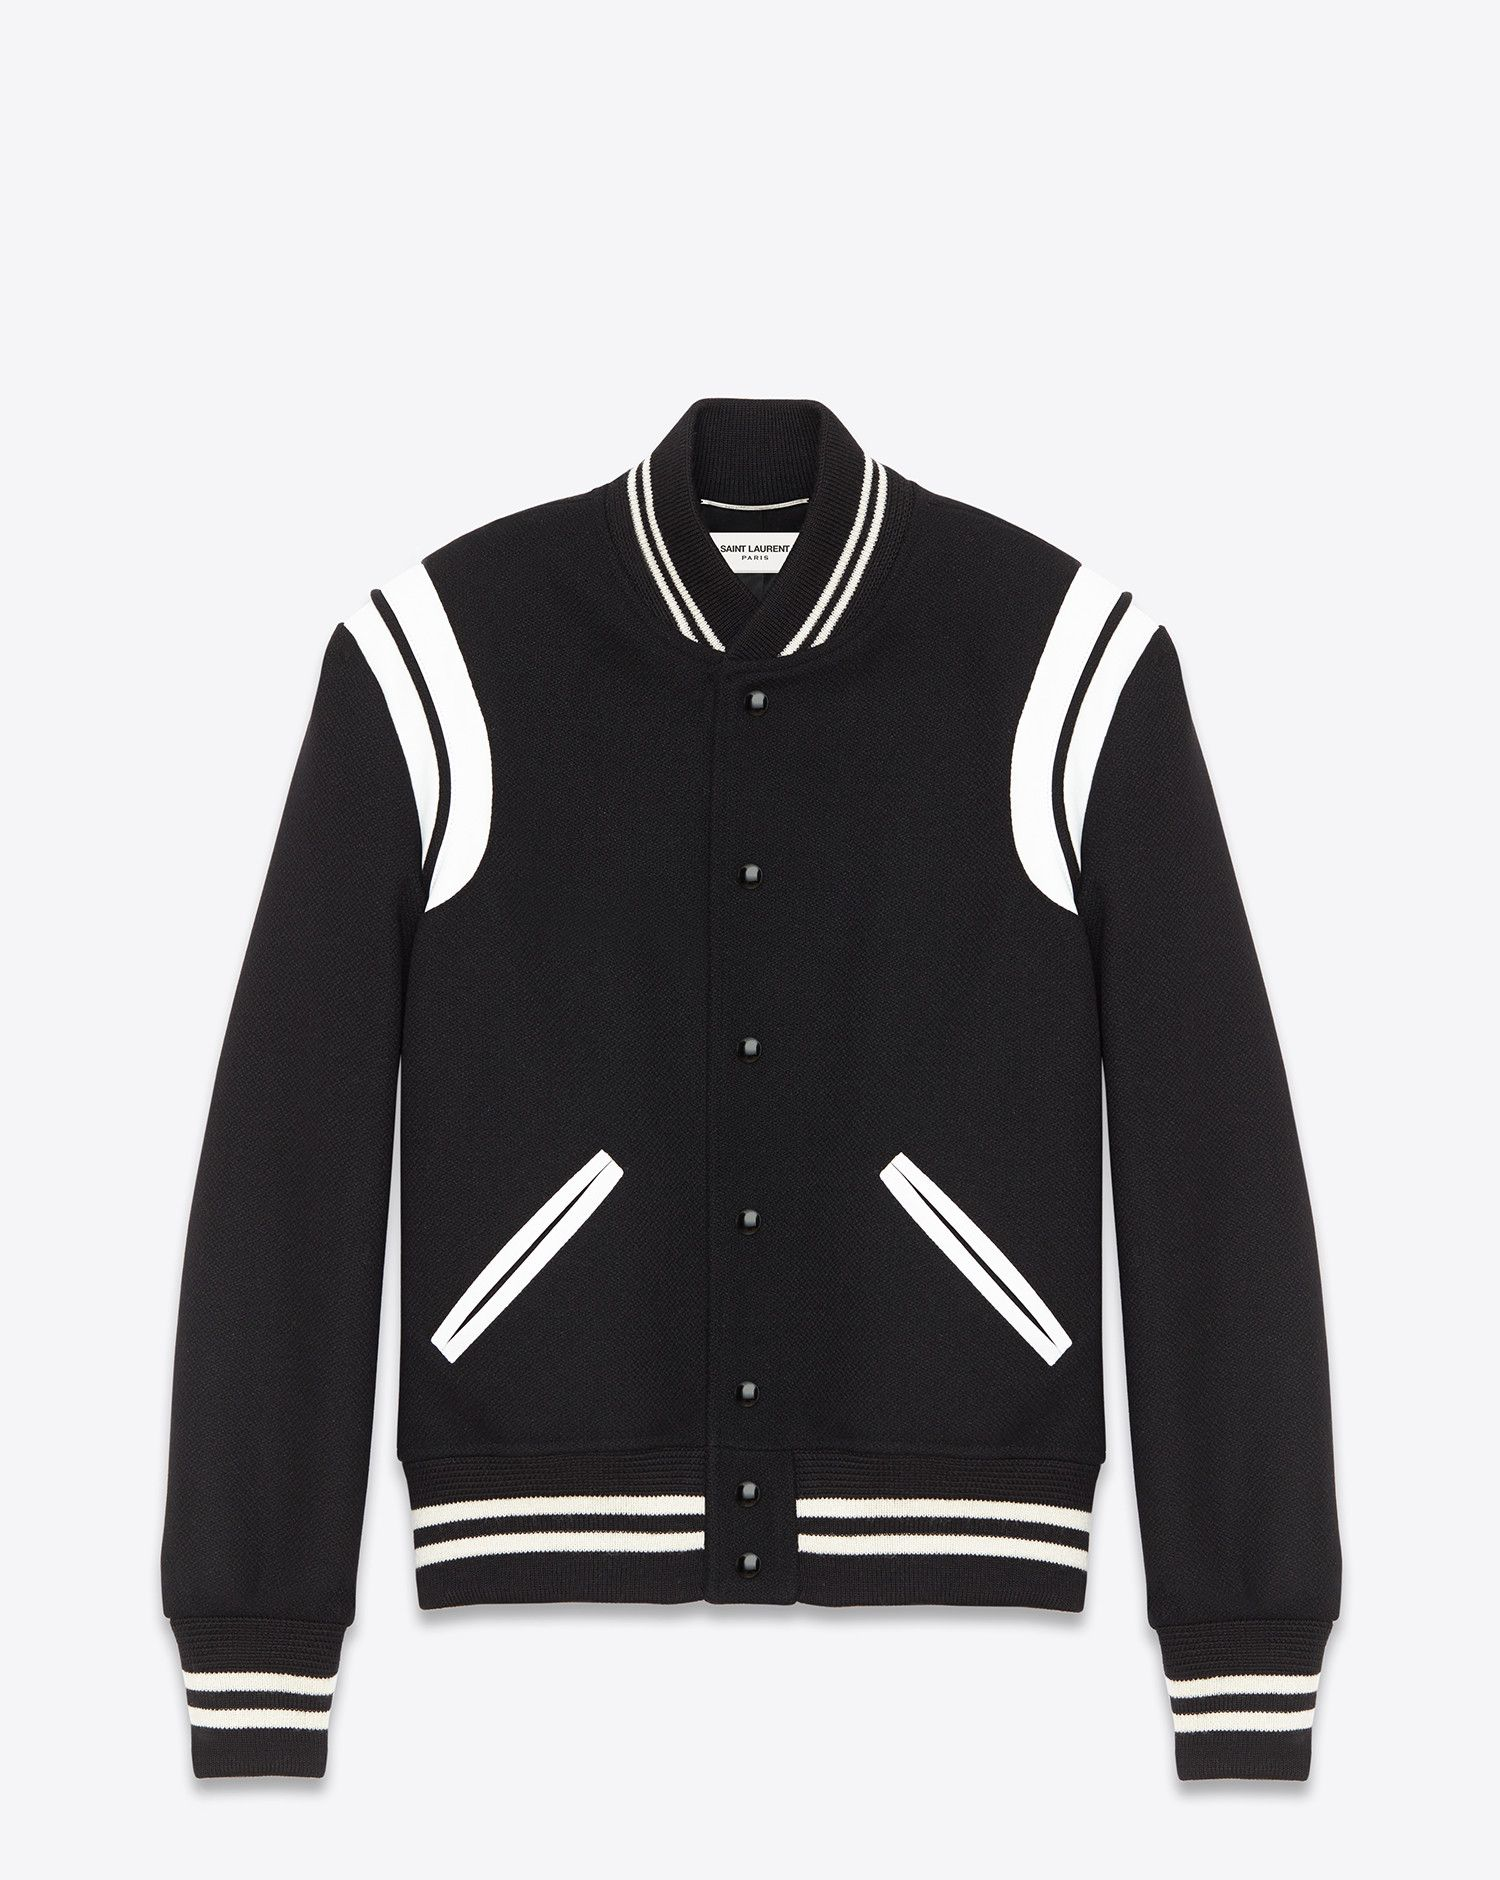 40257acaf553 Saint Laurent TEDDY JACKET IN Black Virgin Wool And Off White LEATHER